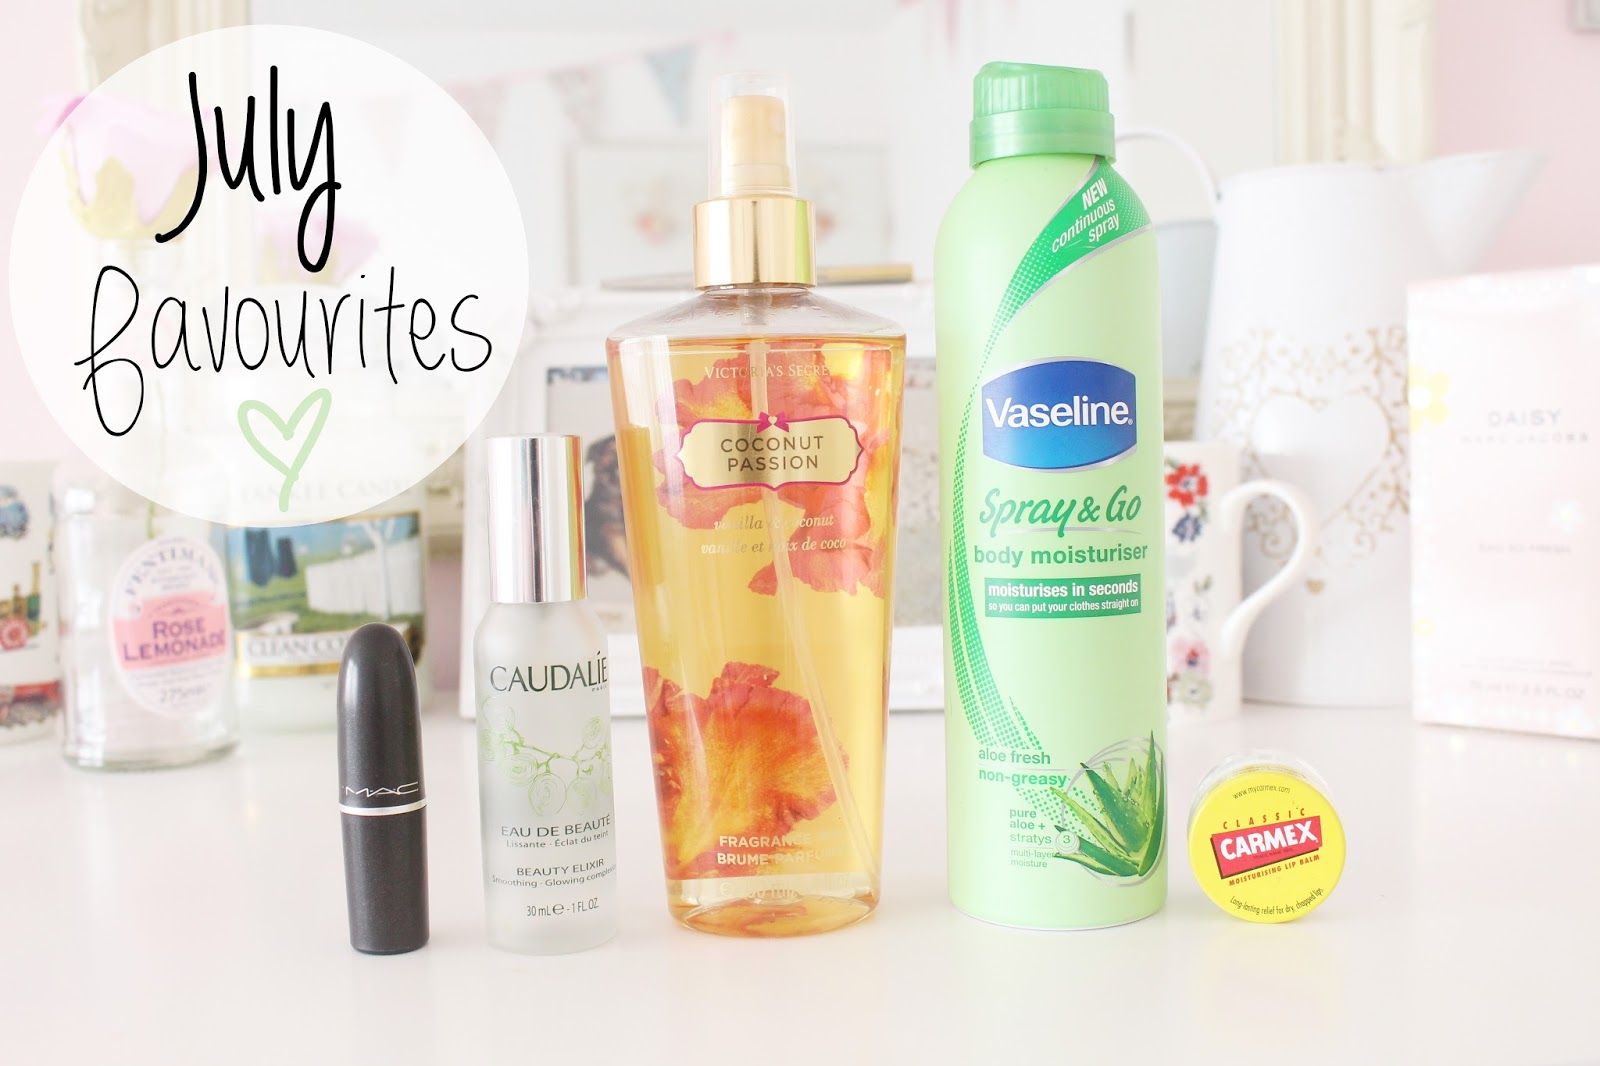 July Favourites Blog